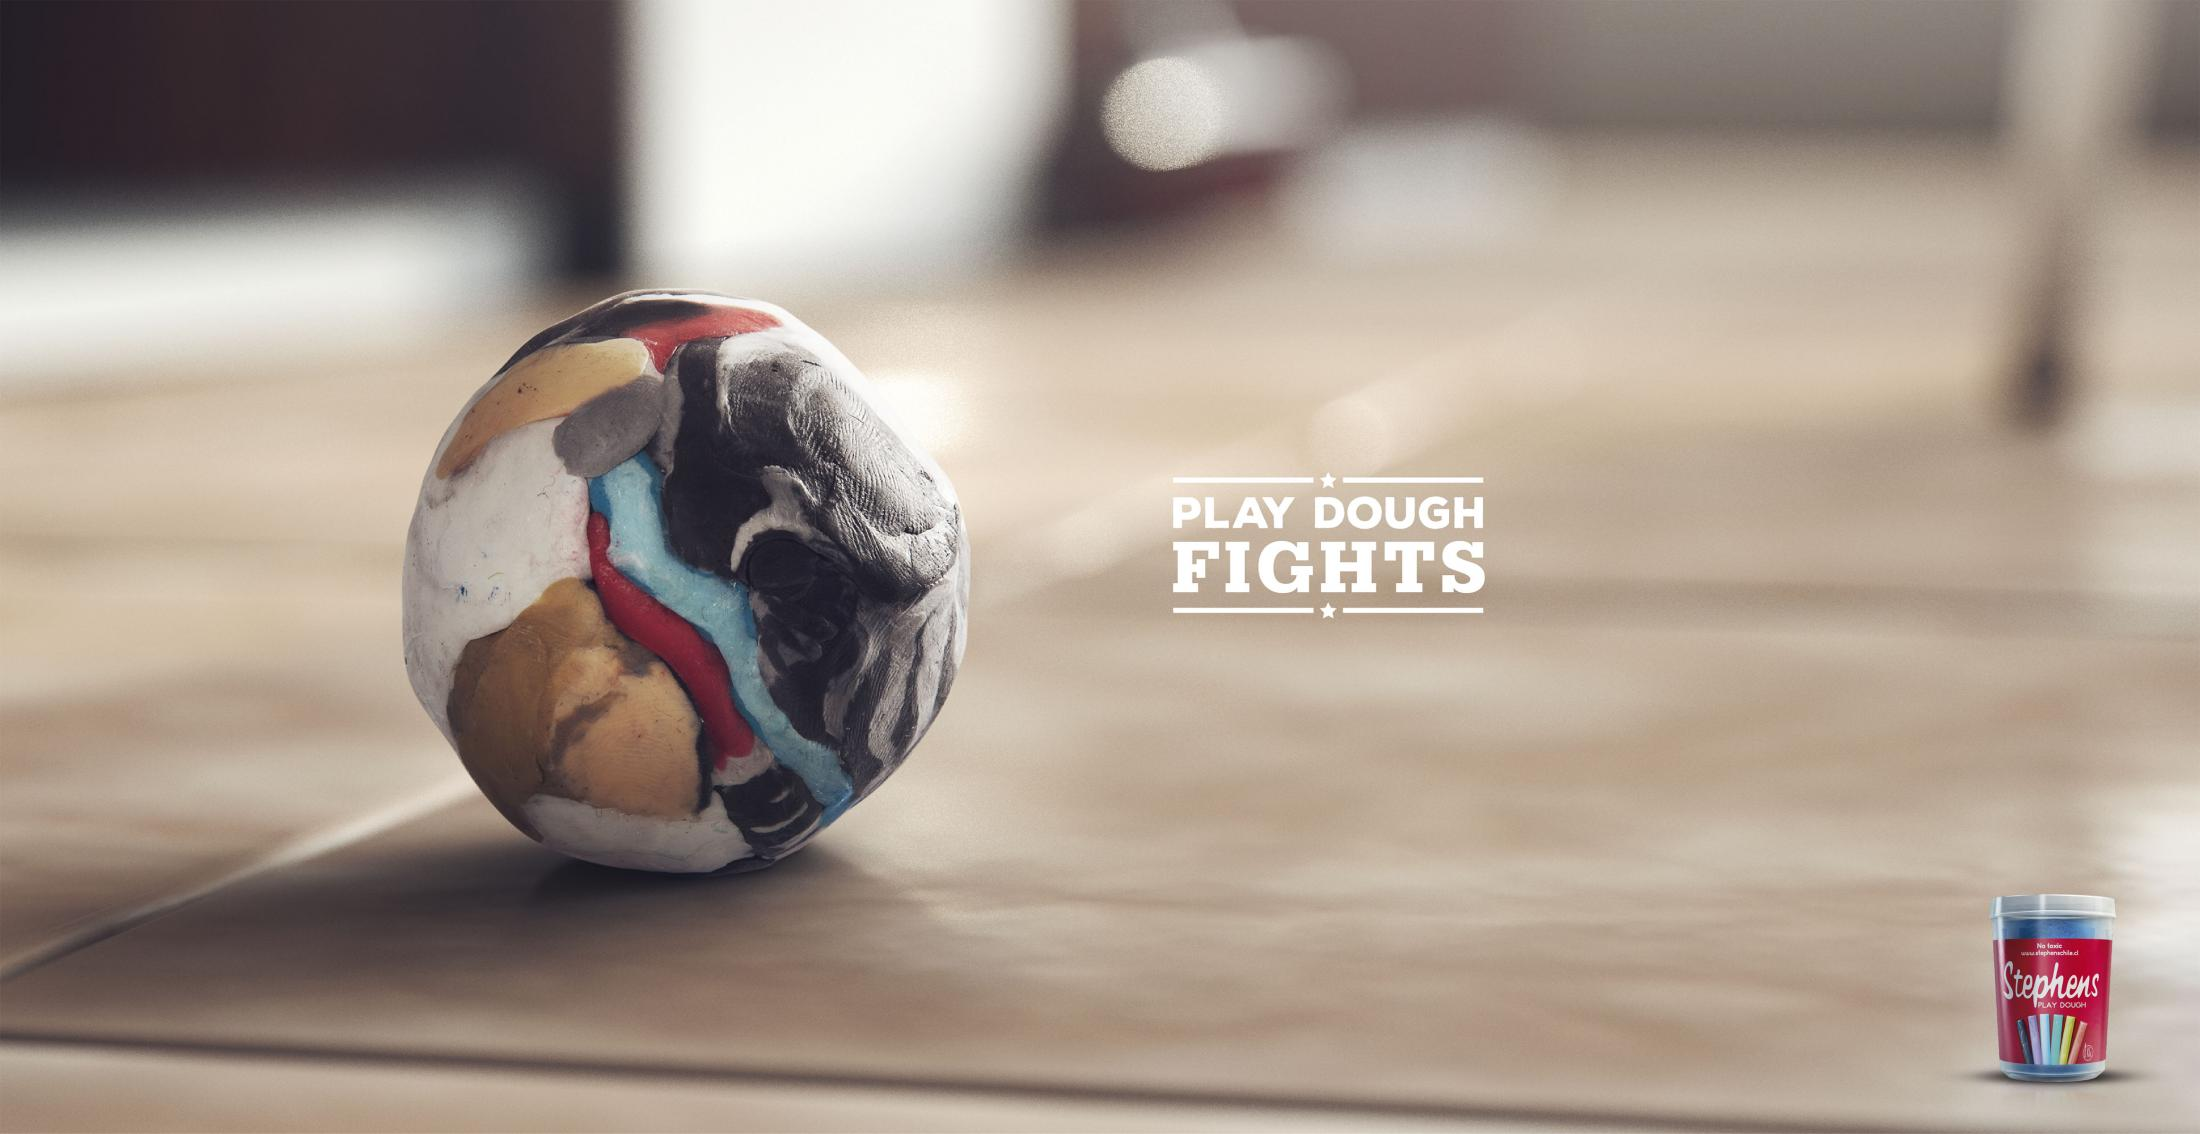 Stephens Print Ad - Play Dough Fights, 3